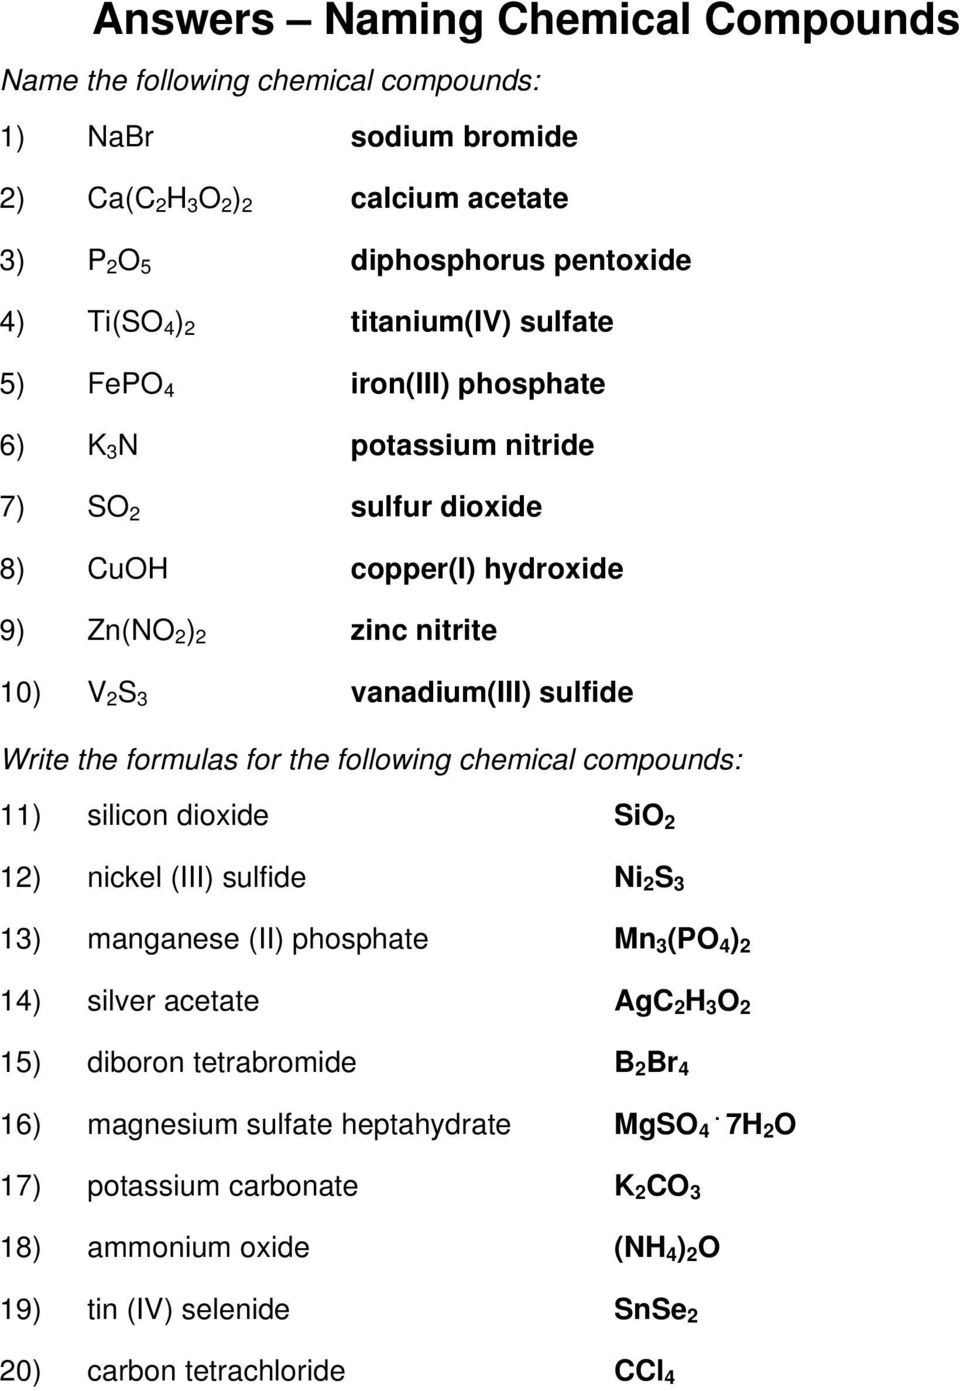 Naming Ionic Compounds Answer Key - PDF Free Download